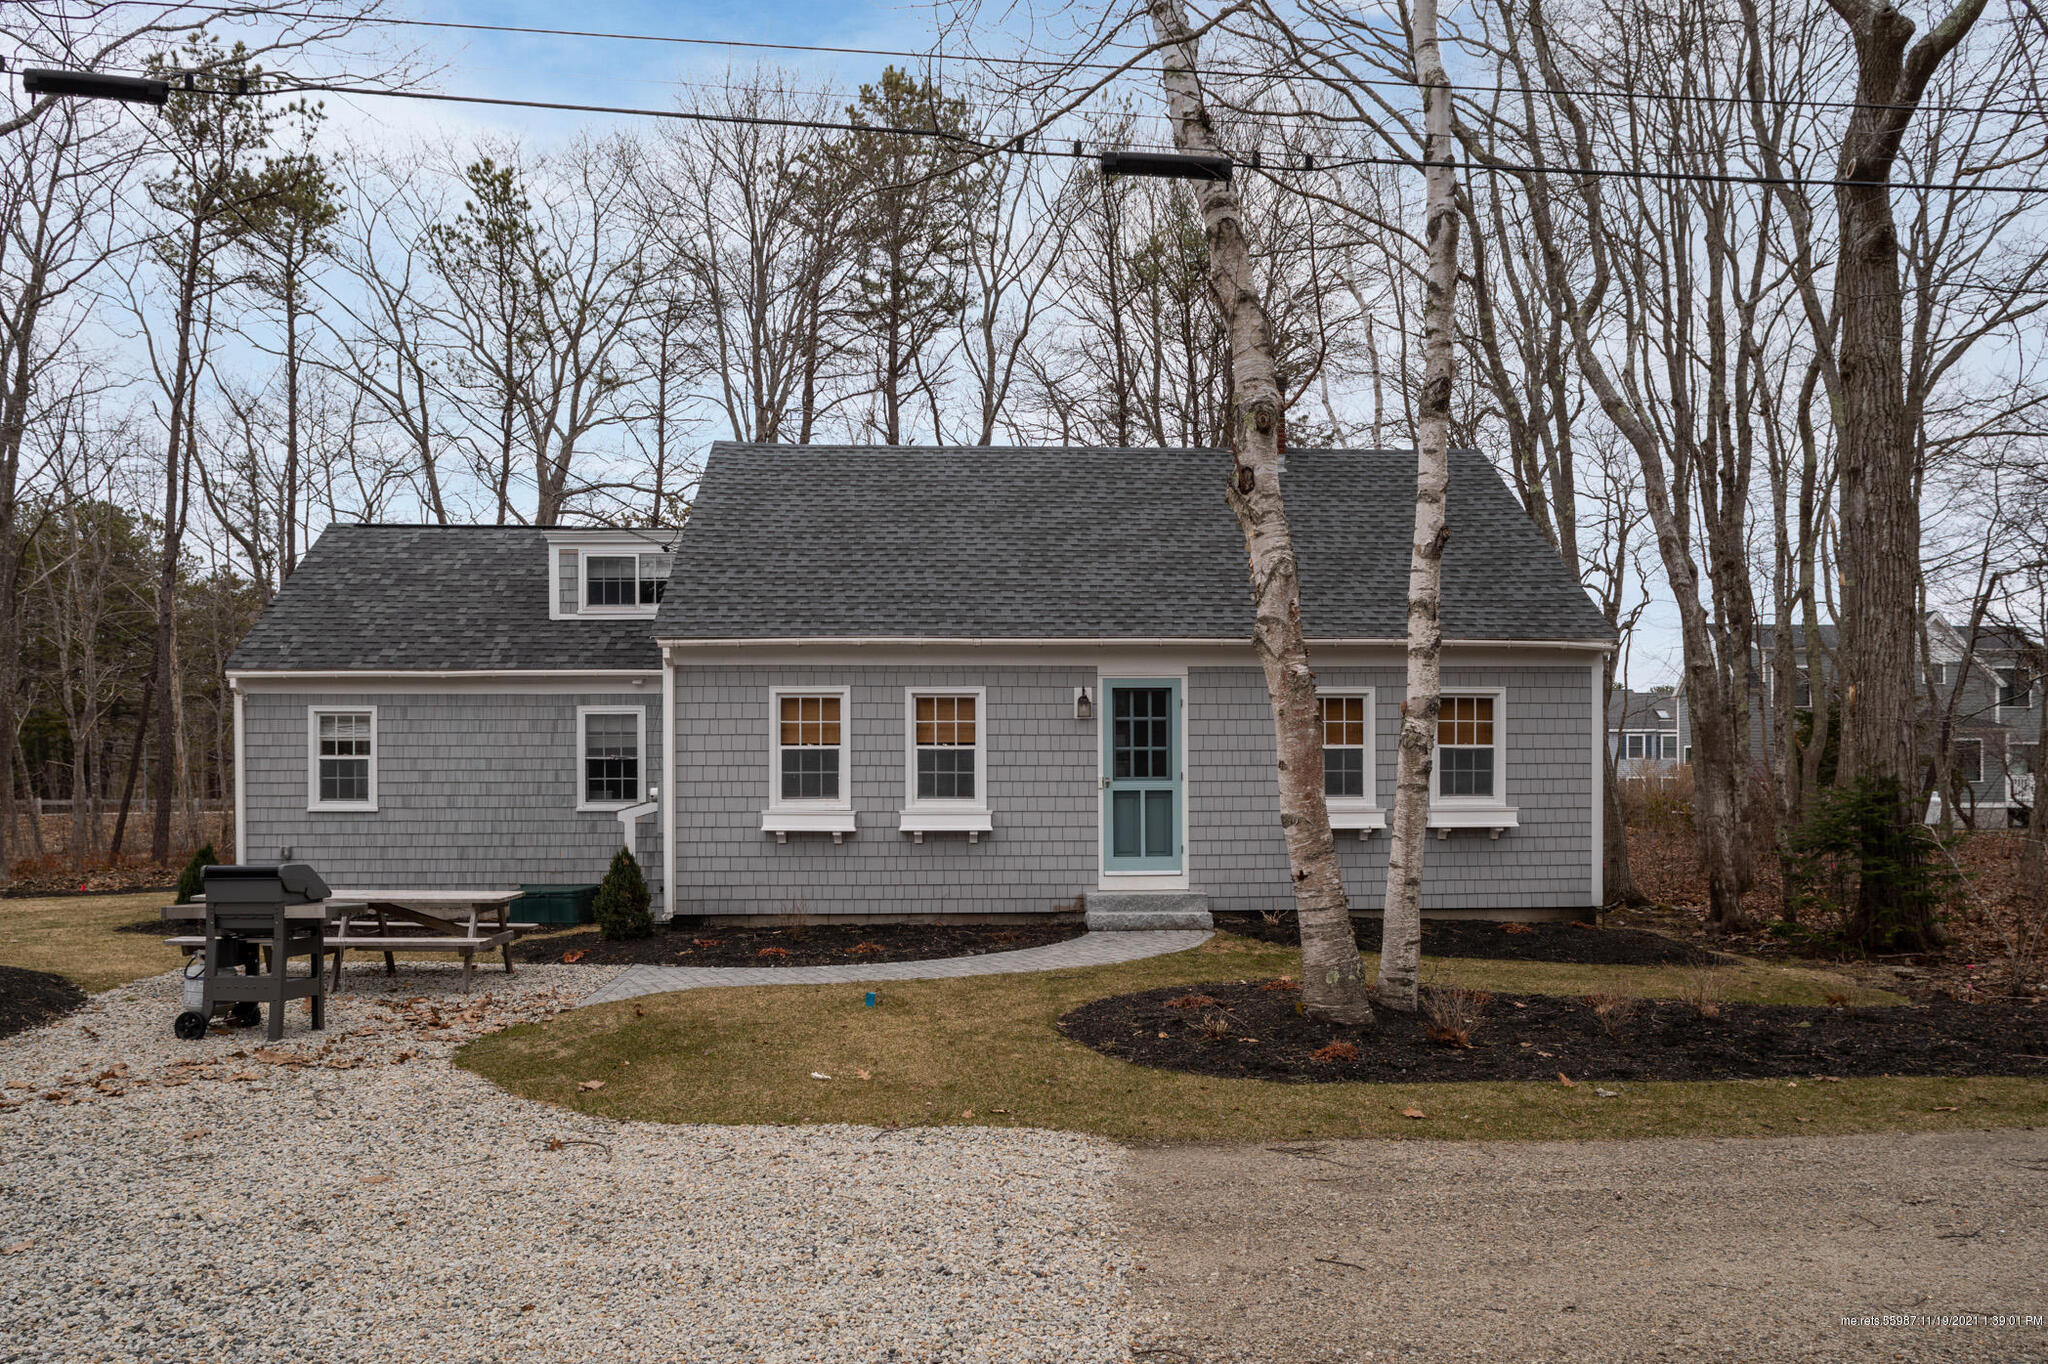 Photo of 9 Cleaves Avenue Kennebunkport ME 04046